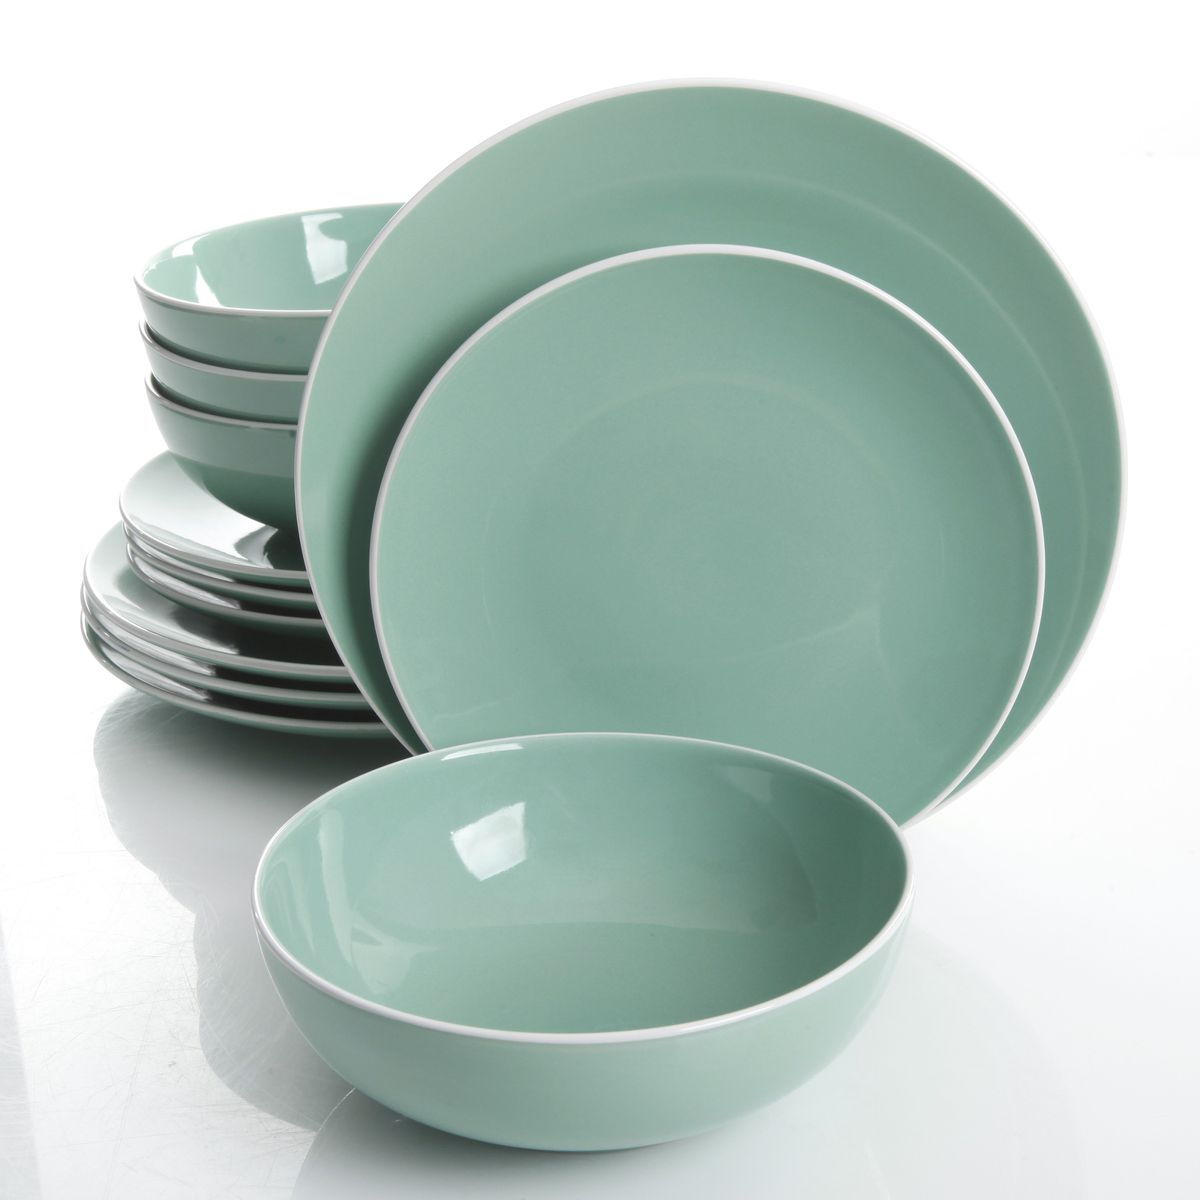 Mainstays 12 Piece Two Tone Dinnerware Set  sc 1 st  Takealot.com & Mainstays 12 Piece Two Tone Dinnerware Set | Buy Online in South ...